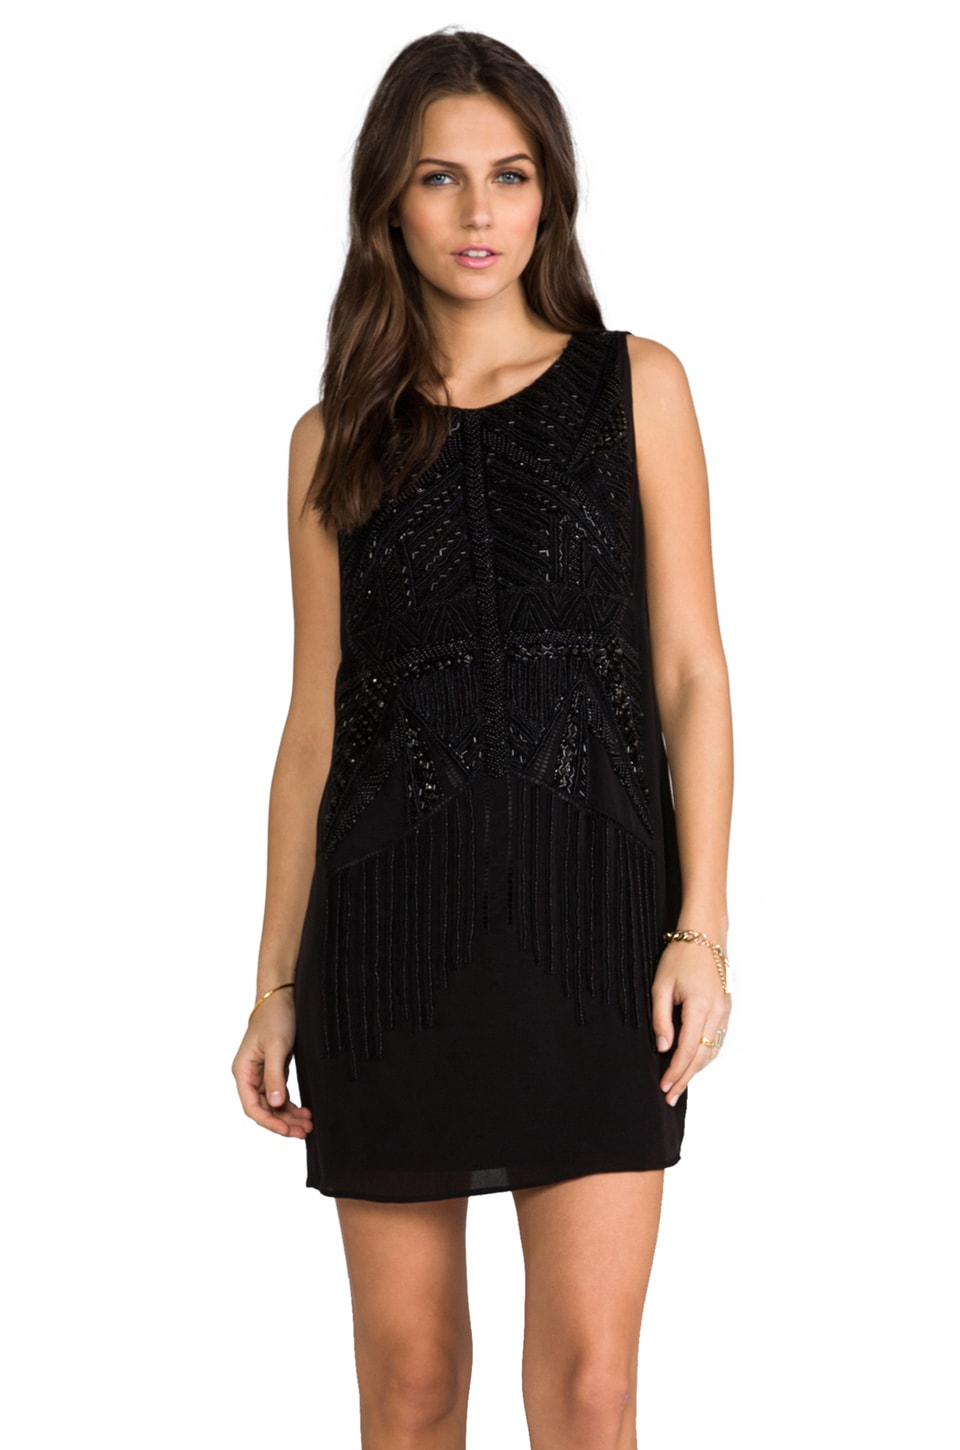 Heather Embellished Mini Dress in Black